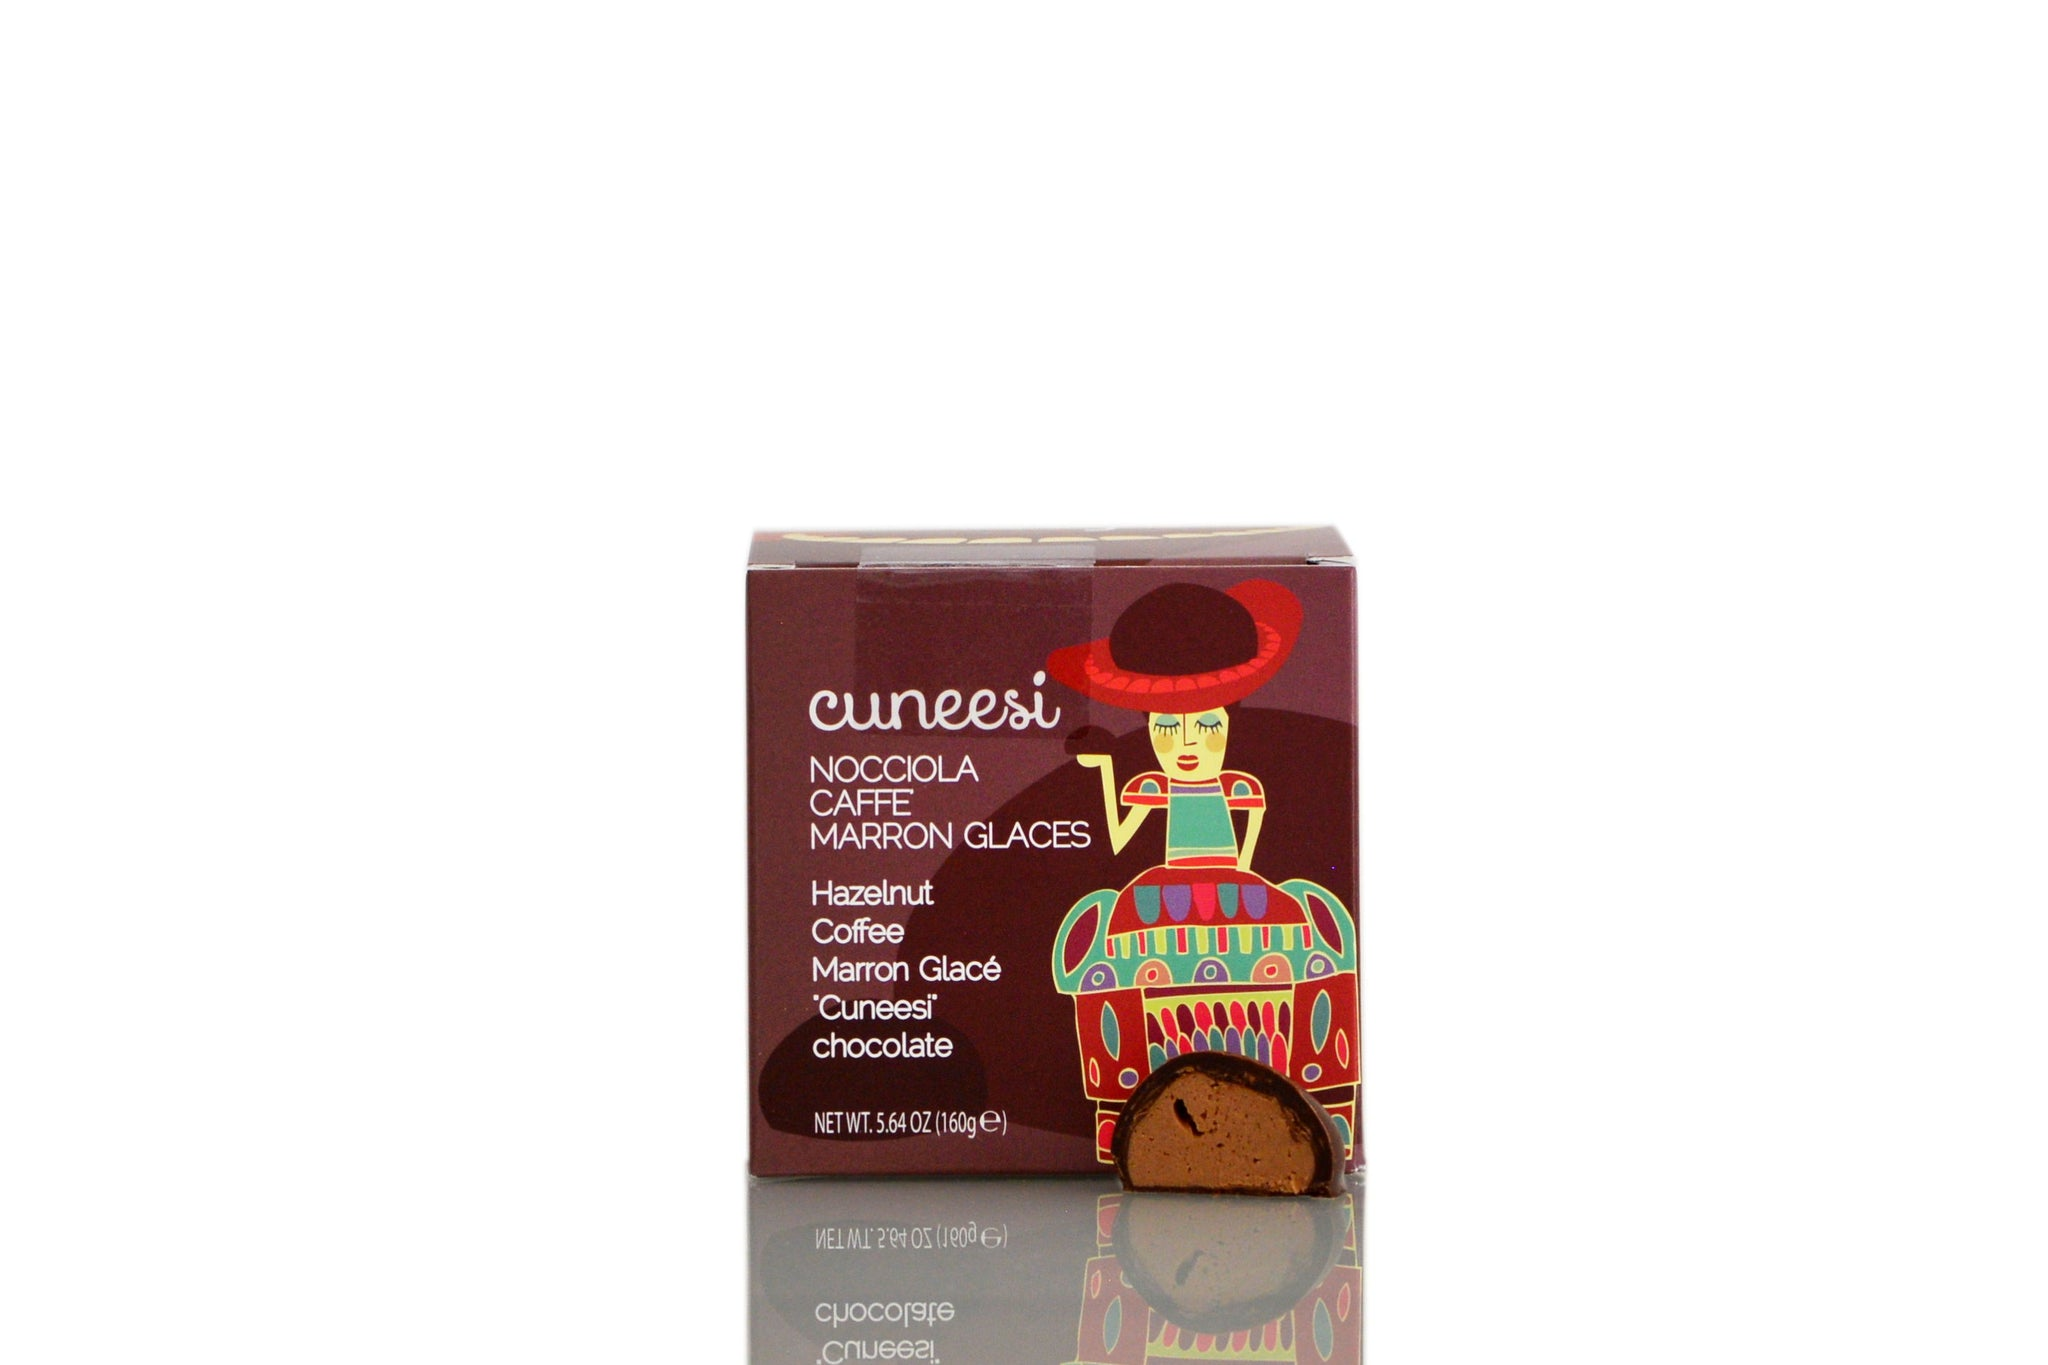 Traditional Cuneesi with Hazelnut, Marron Glacé & Coffee Mixed Box 160g